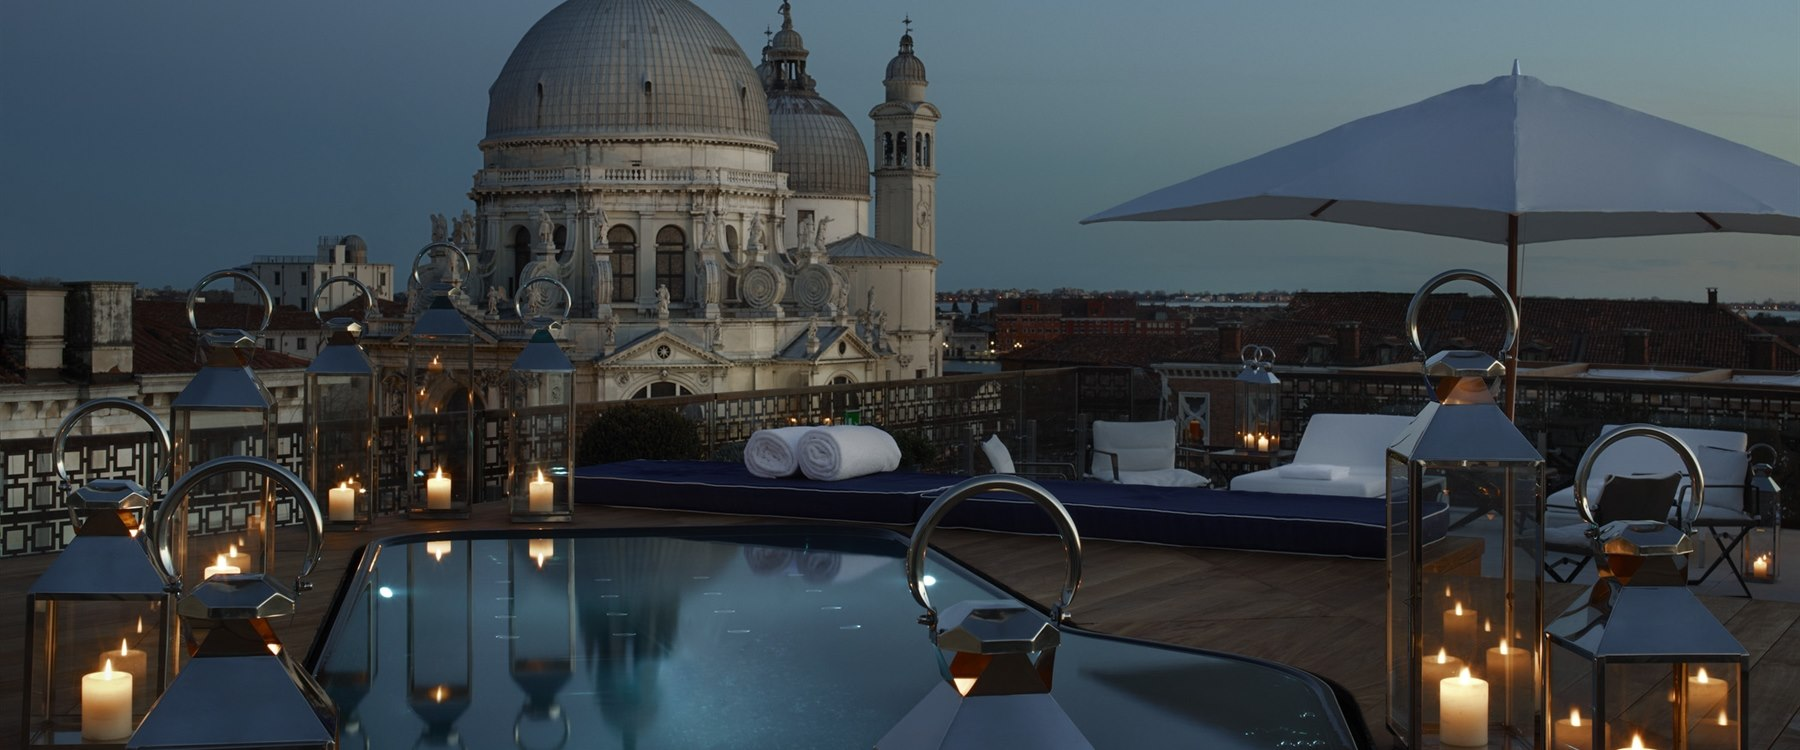 the rendentore terazza suite plunging pool at Gritti Palace, Venice